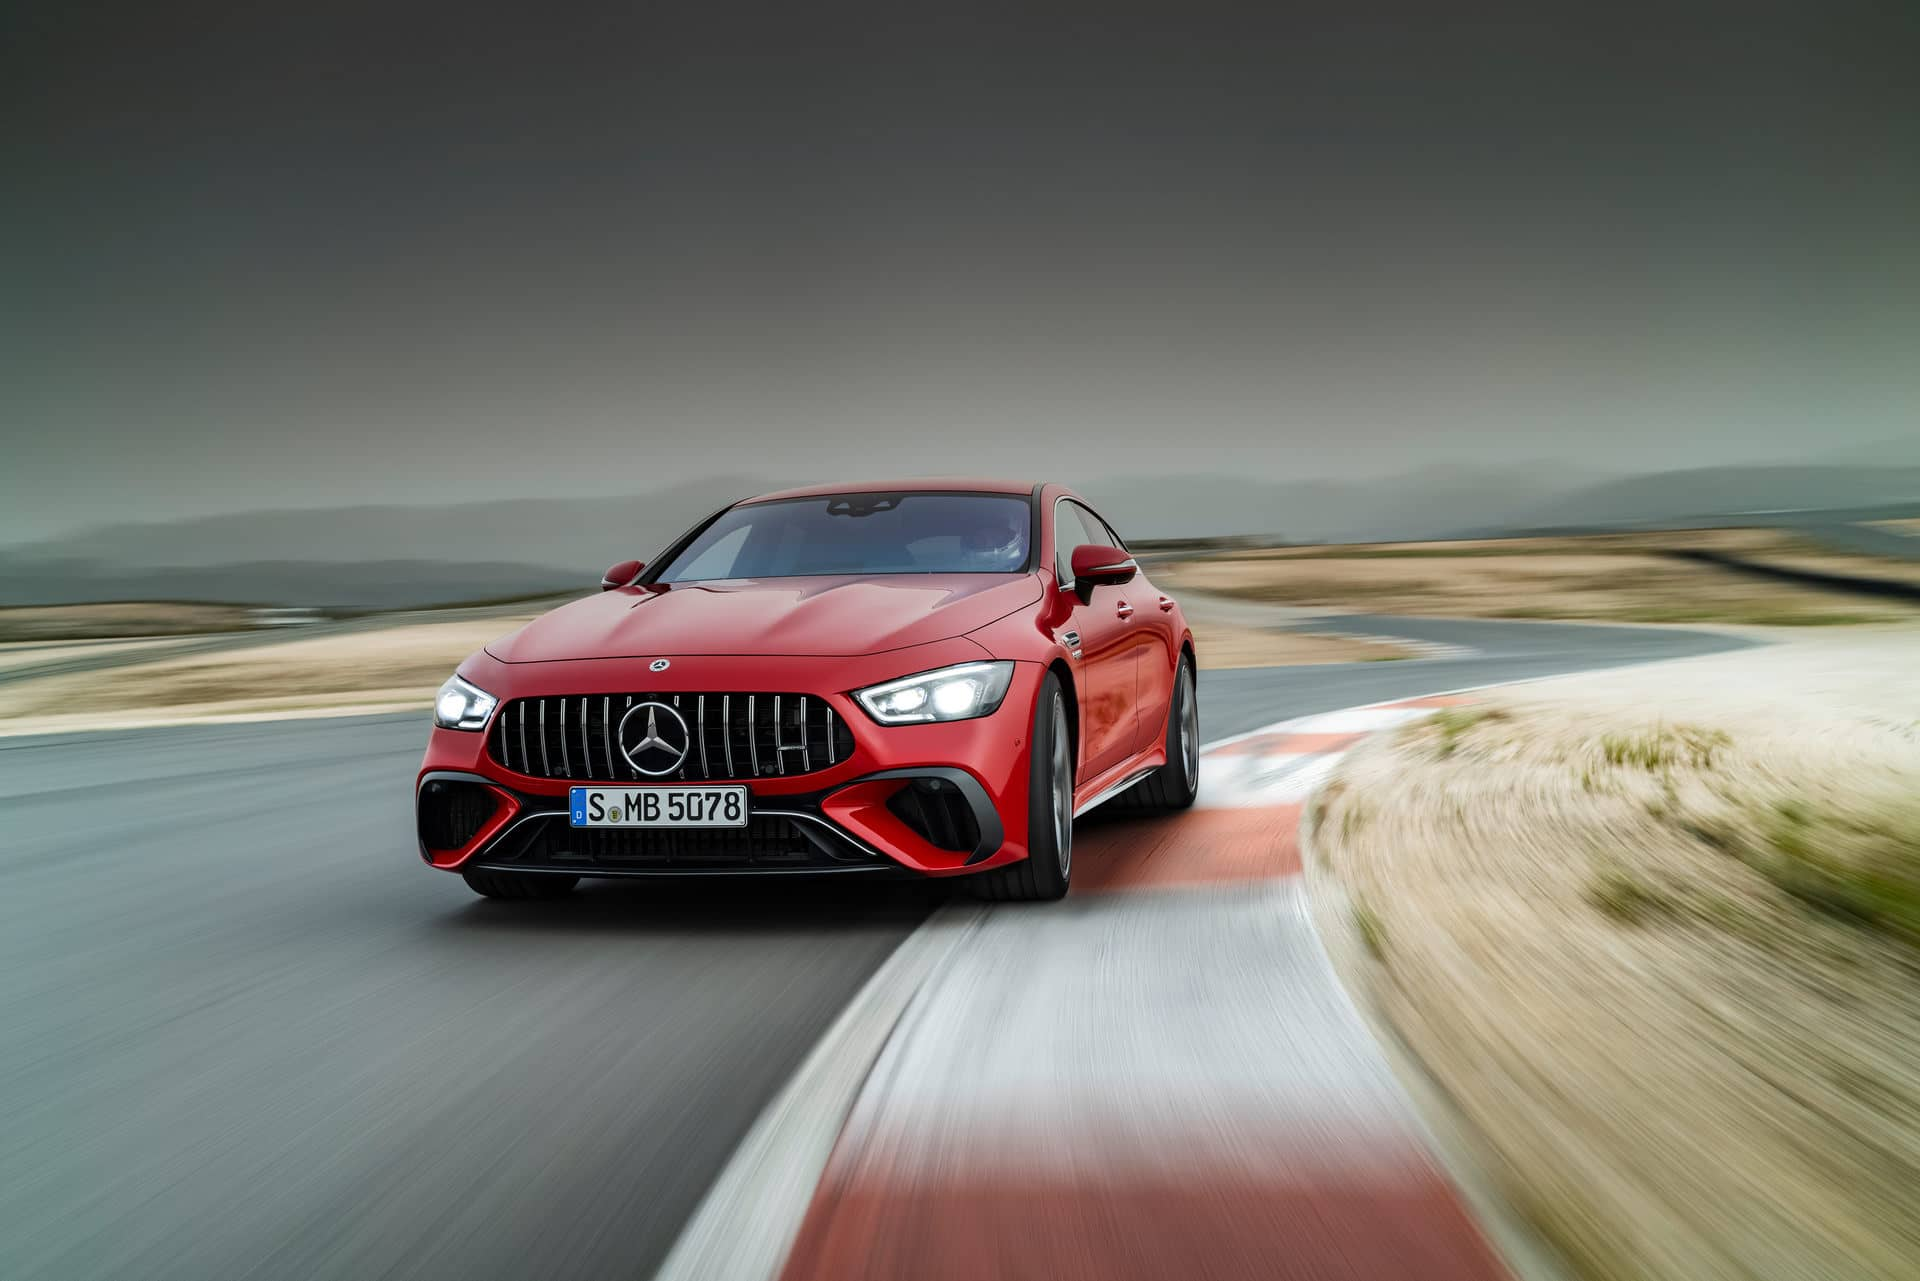 mercedes-amg gt 63 s eperformance (3)